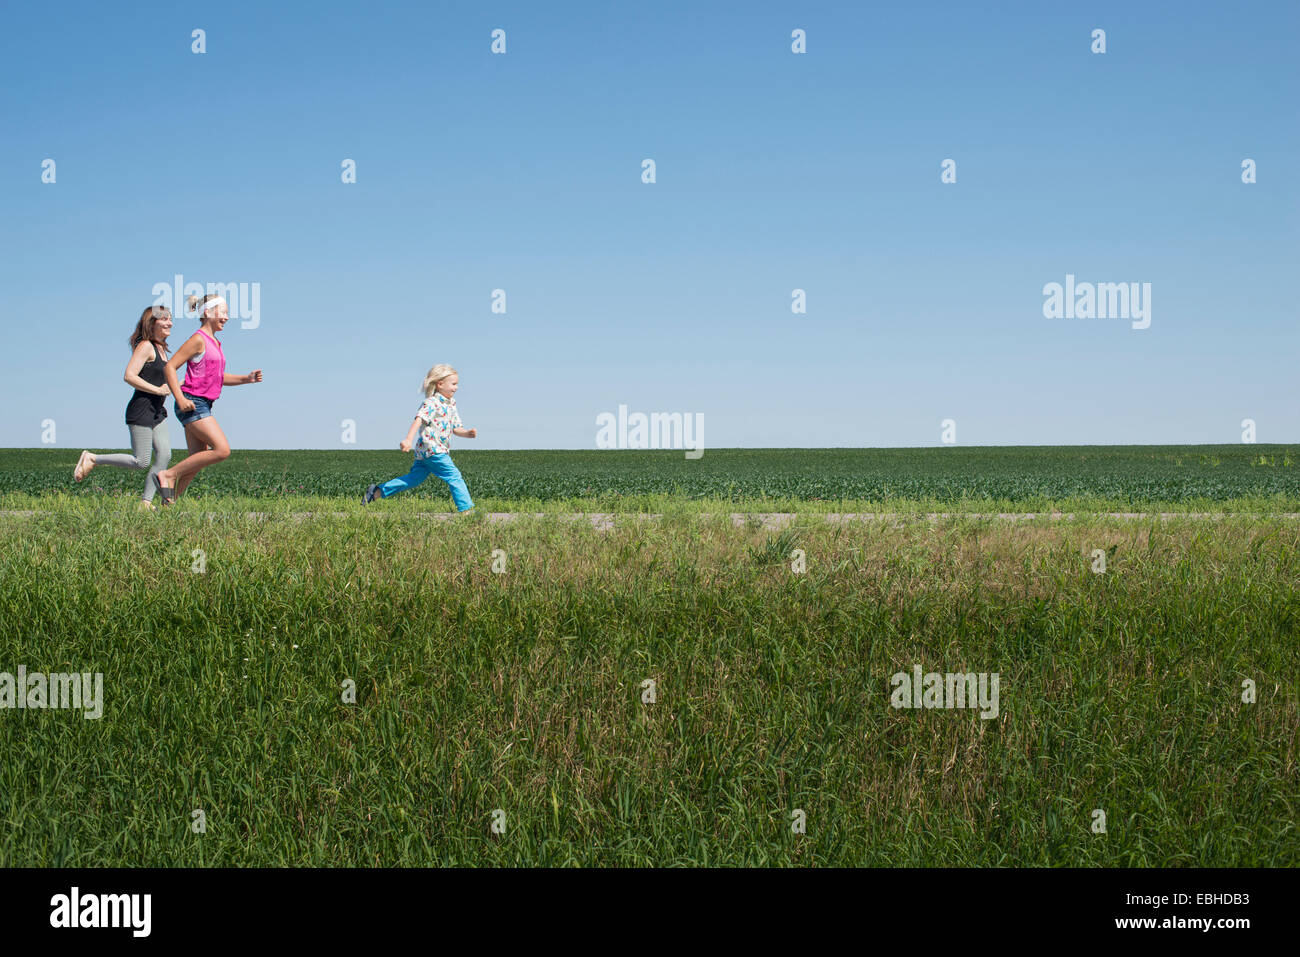 Trois personnes running through field Photo Stock